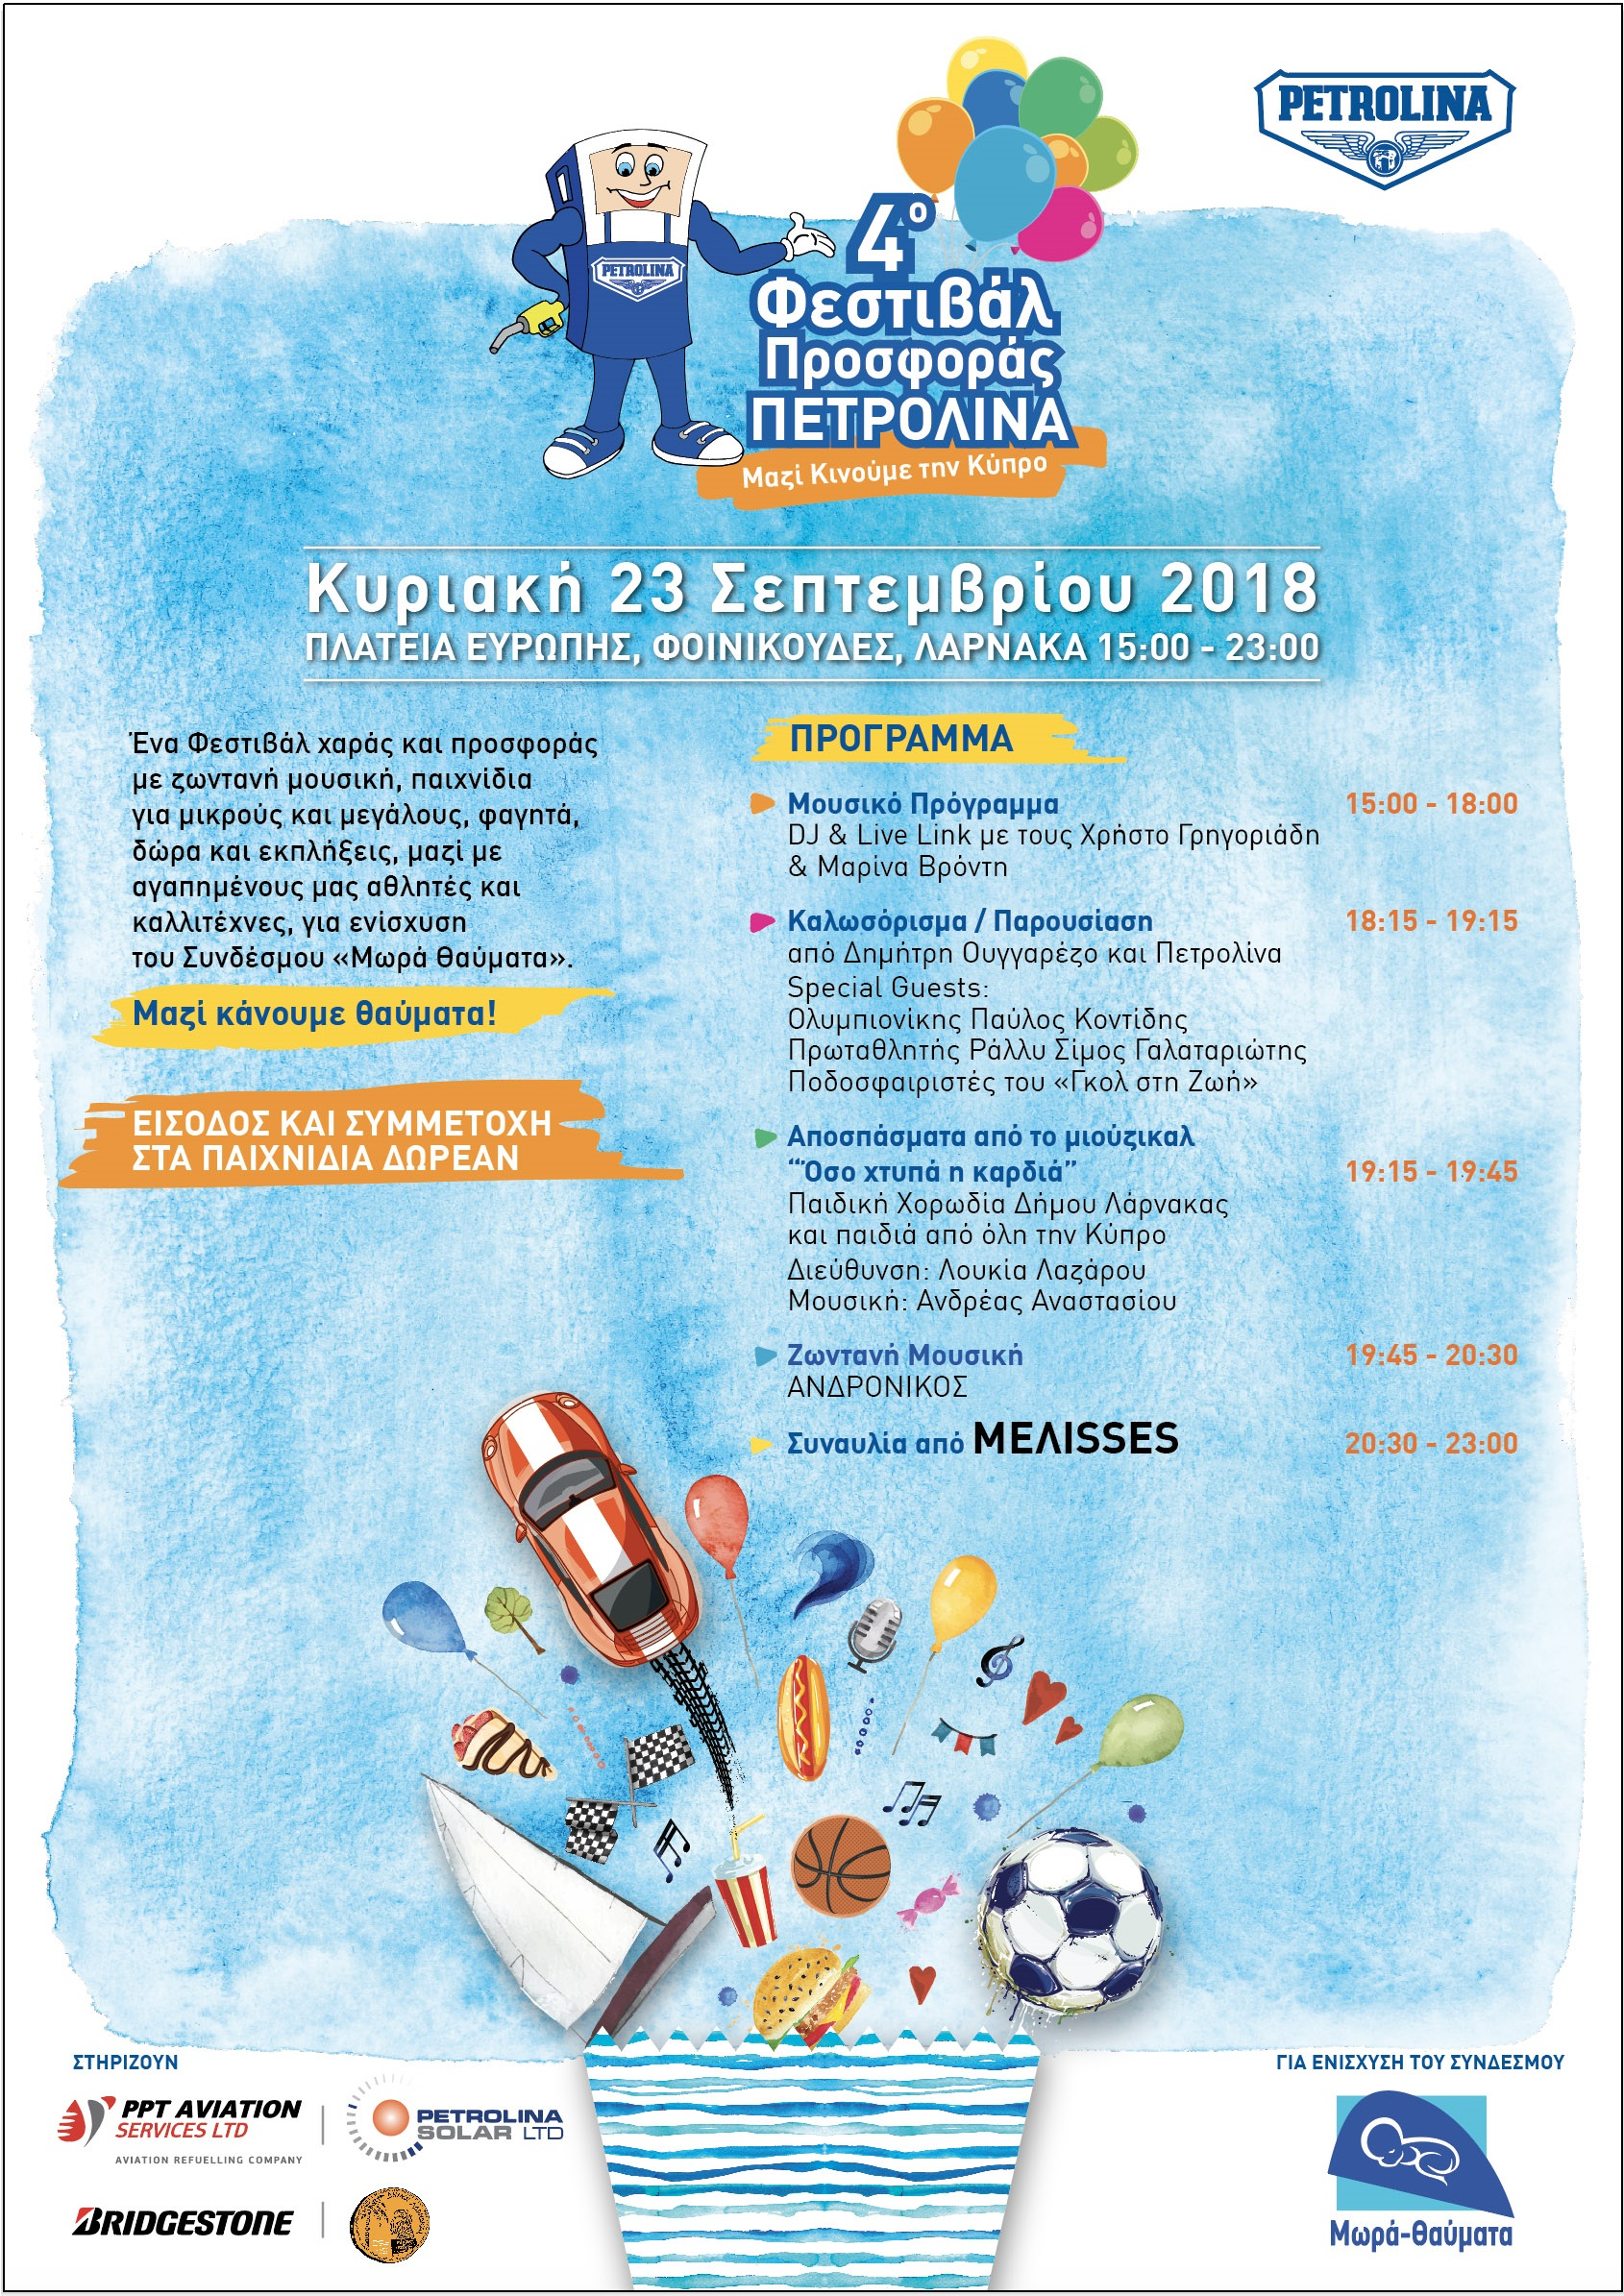 4th Petrolina Charity Festival – Poster